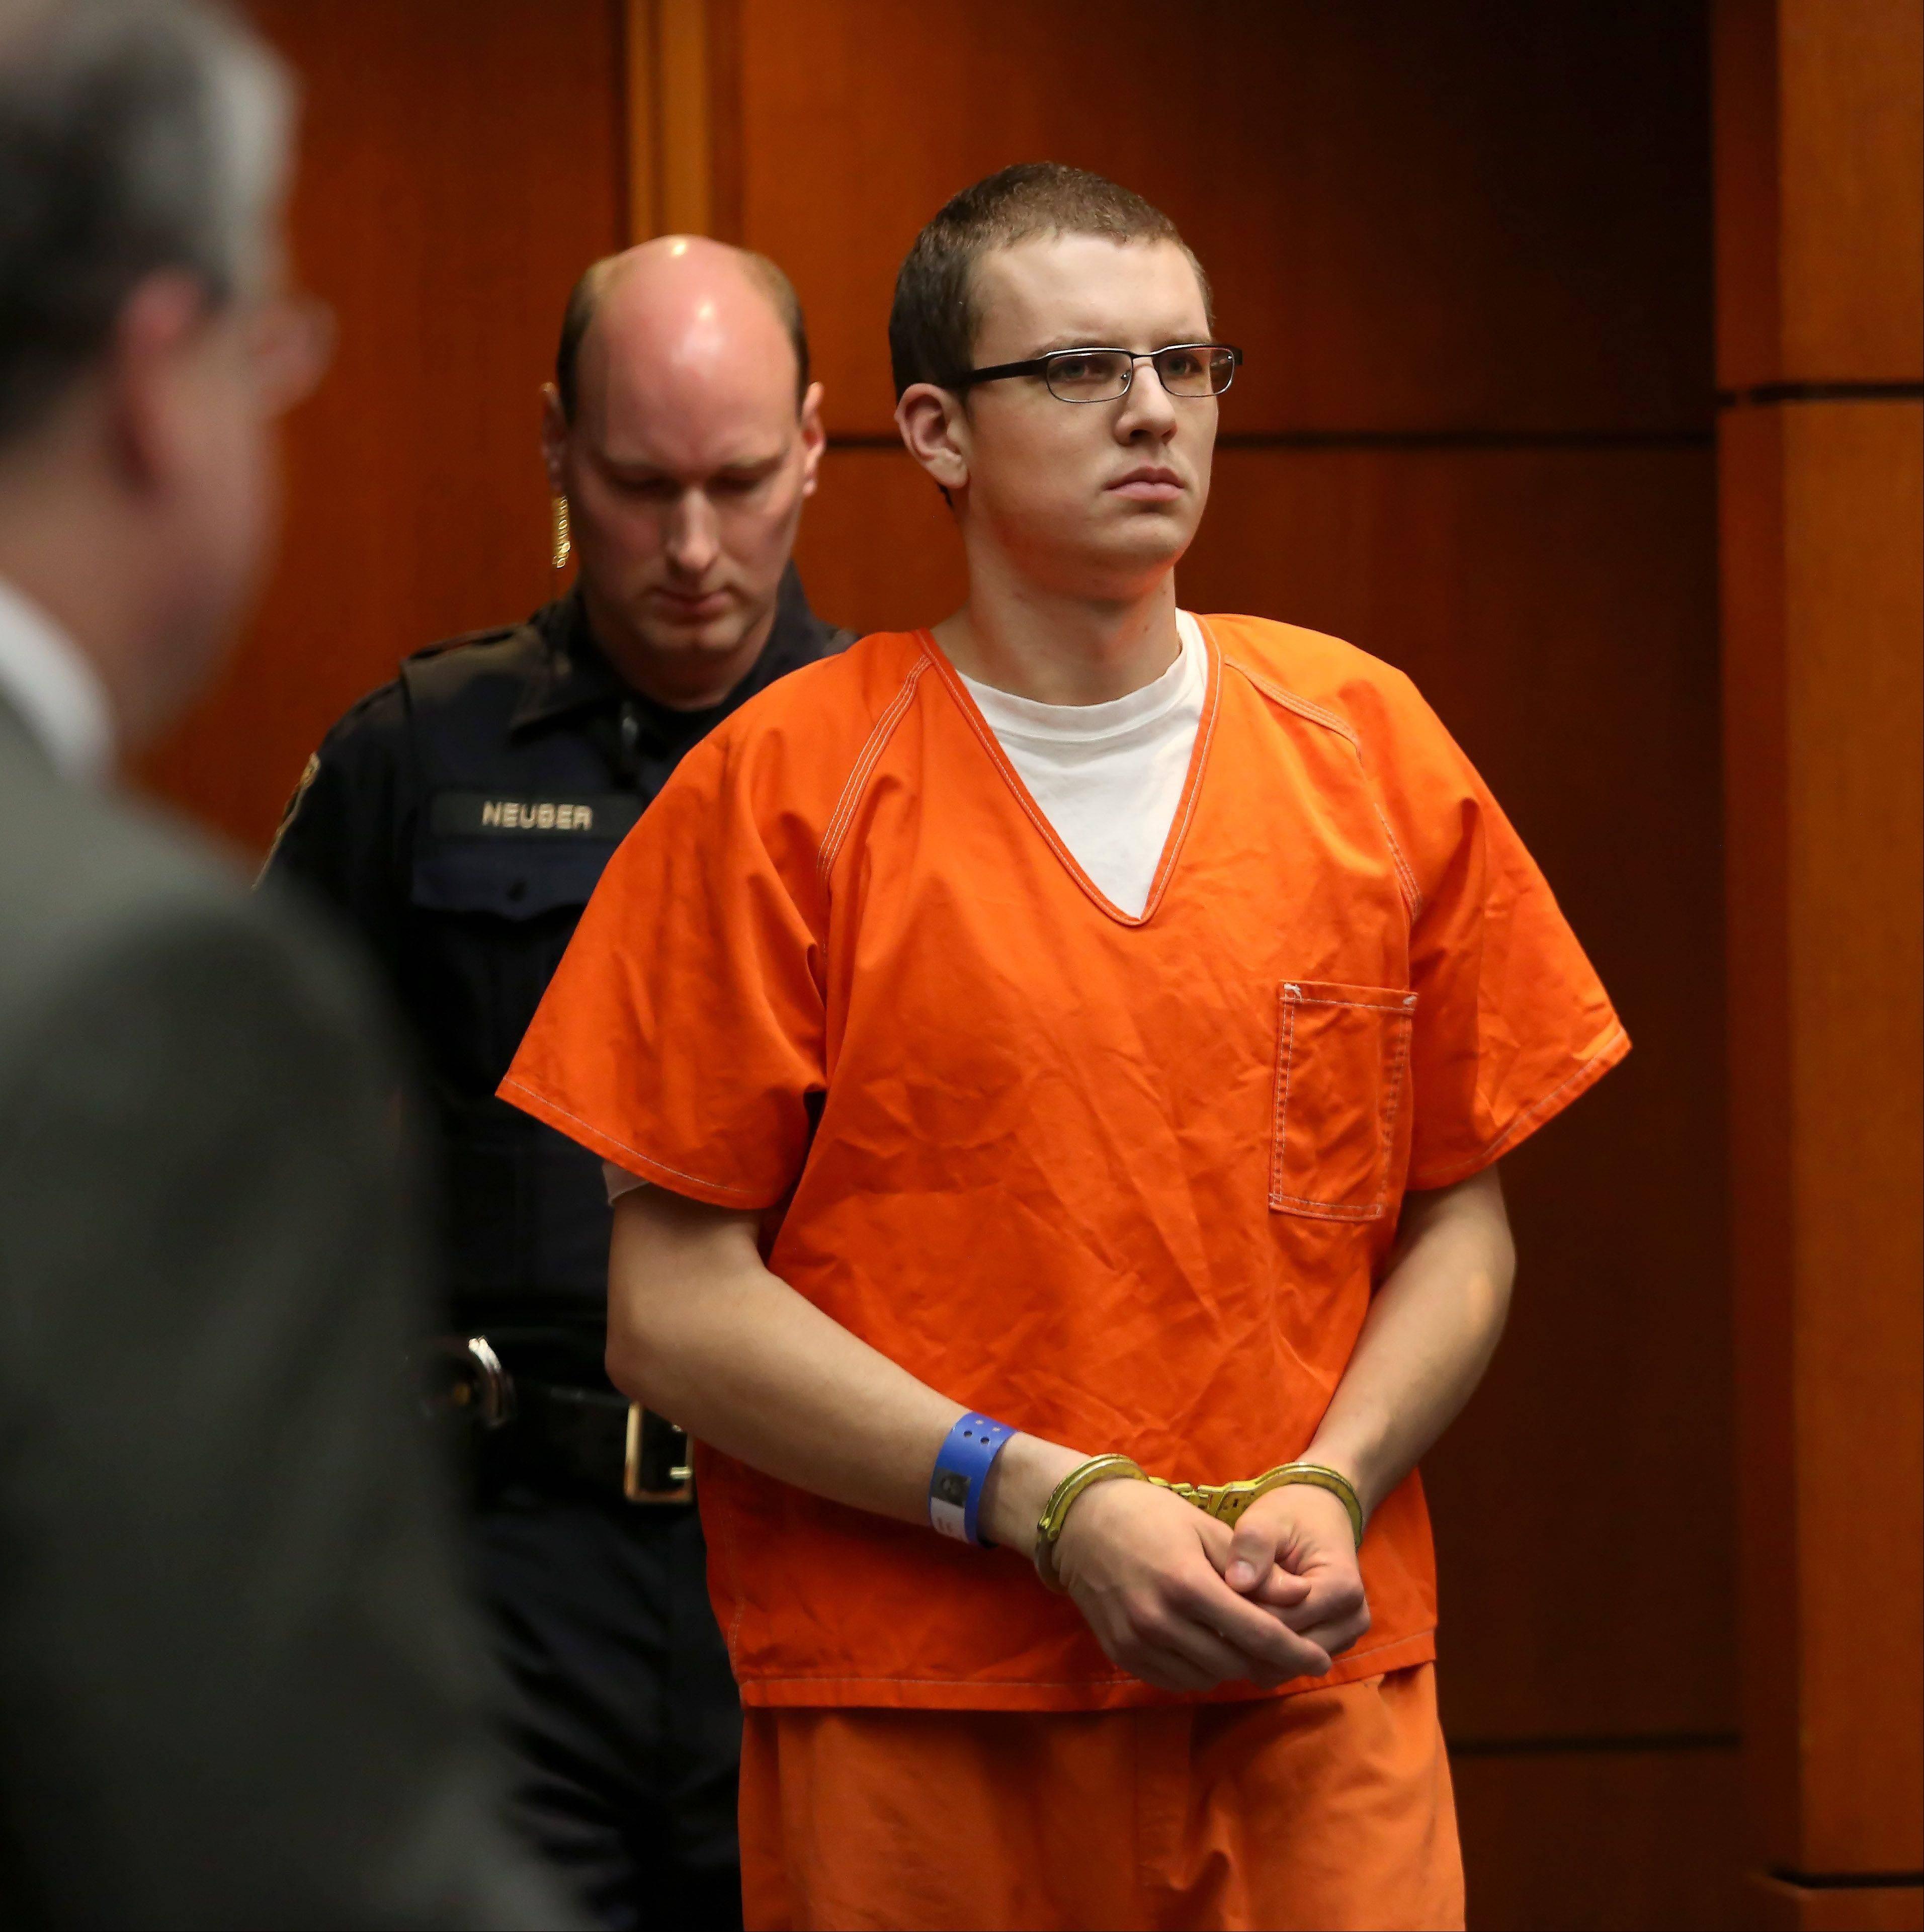 As cameras roll, Woodridge murder suspect pleads not guilty